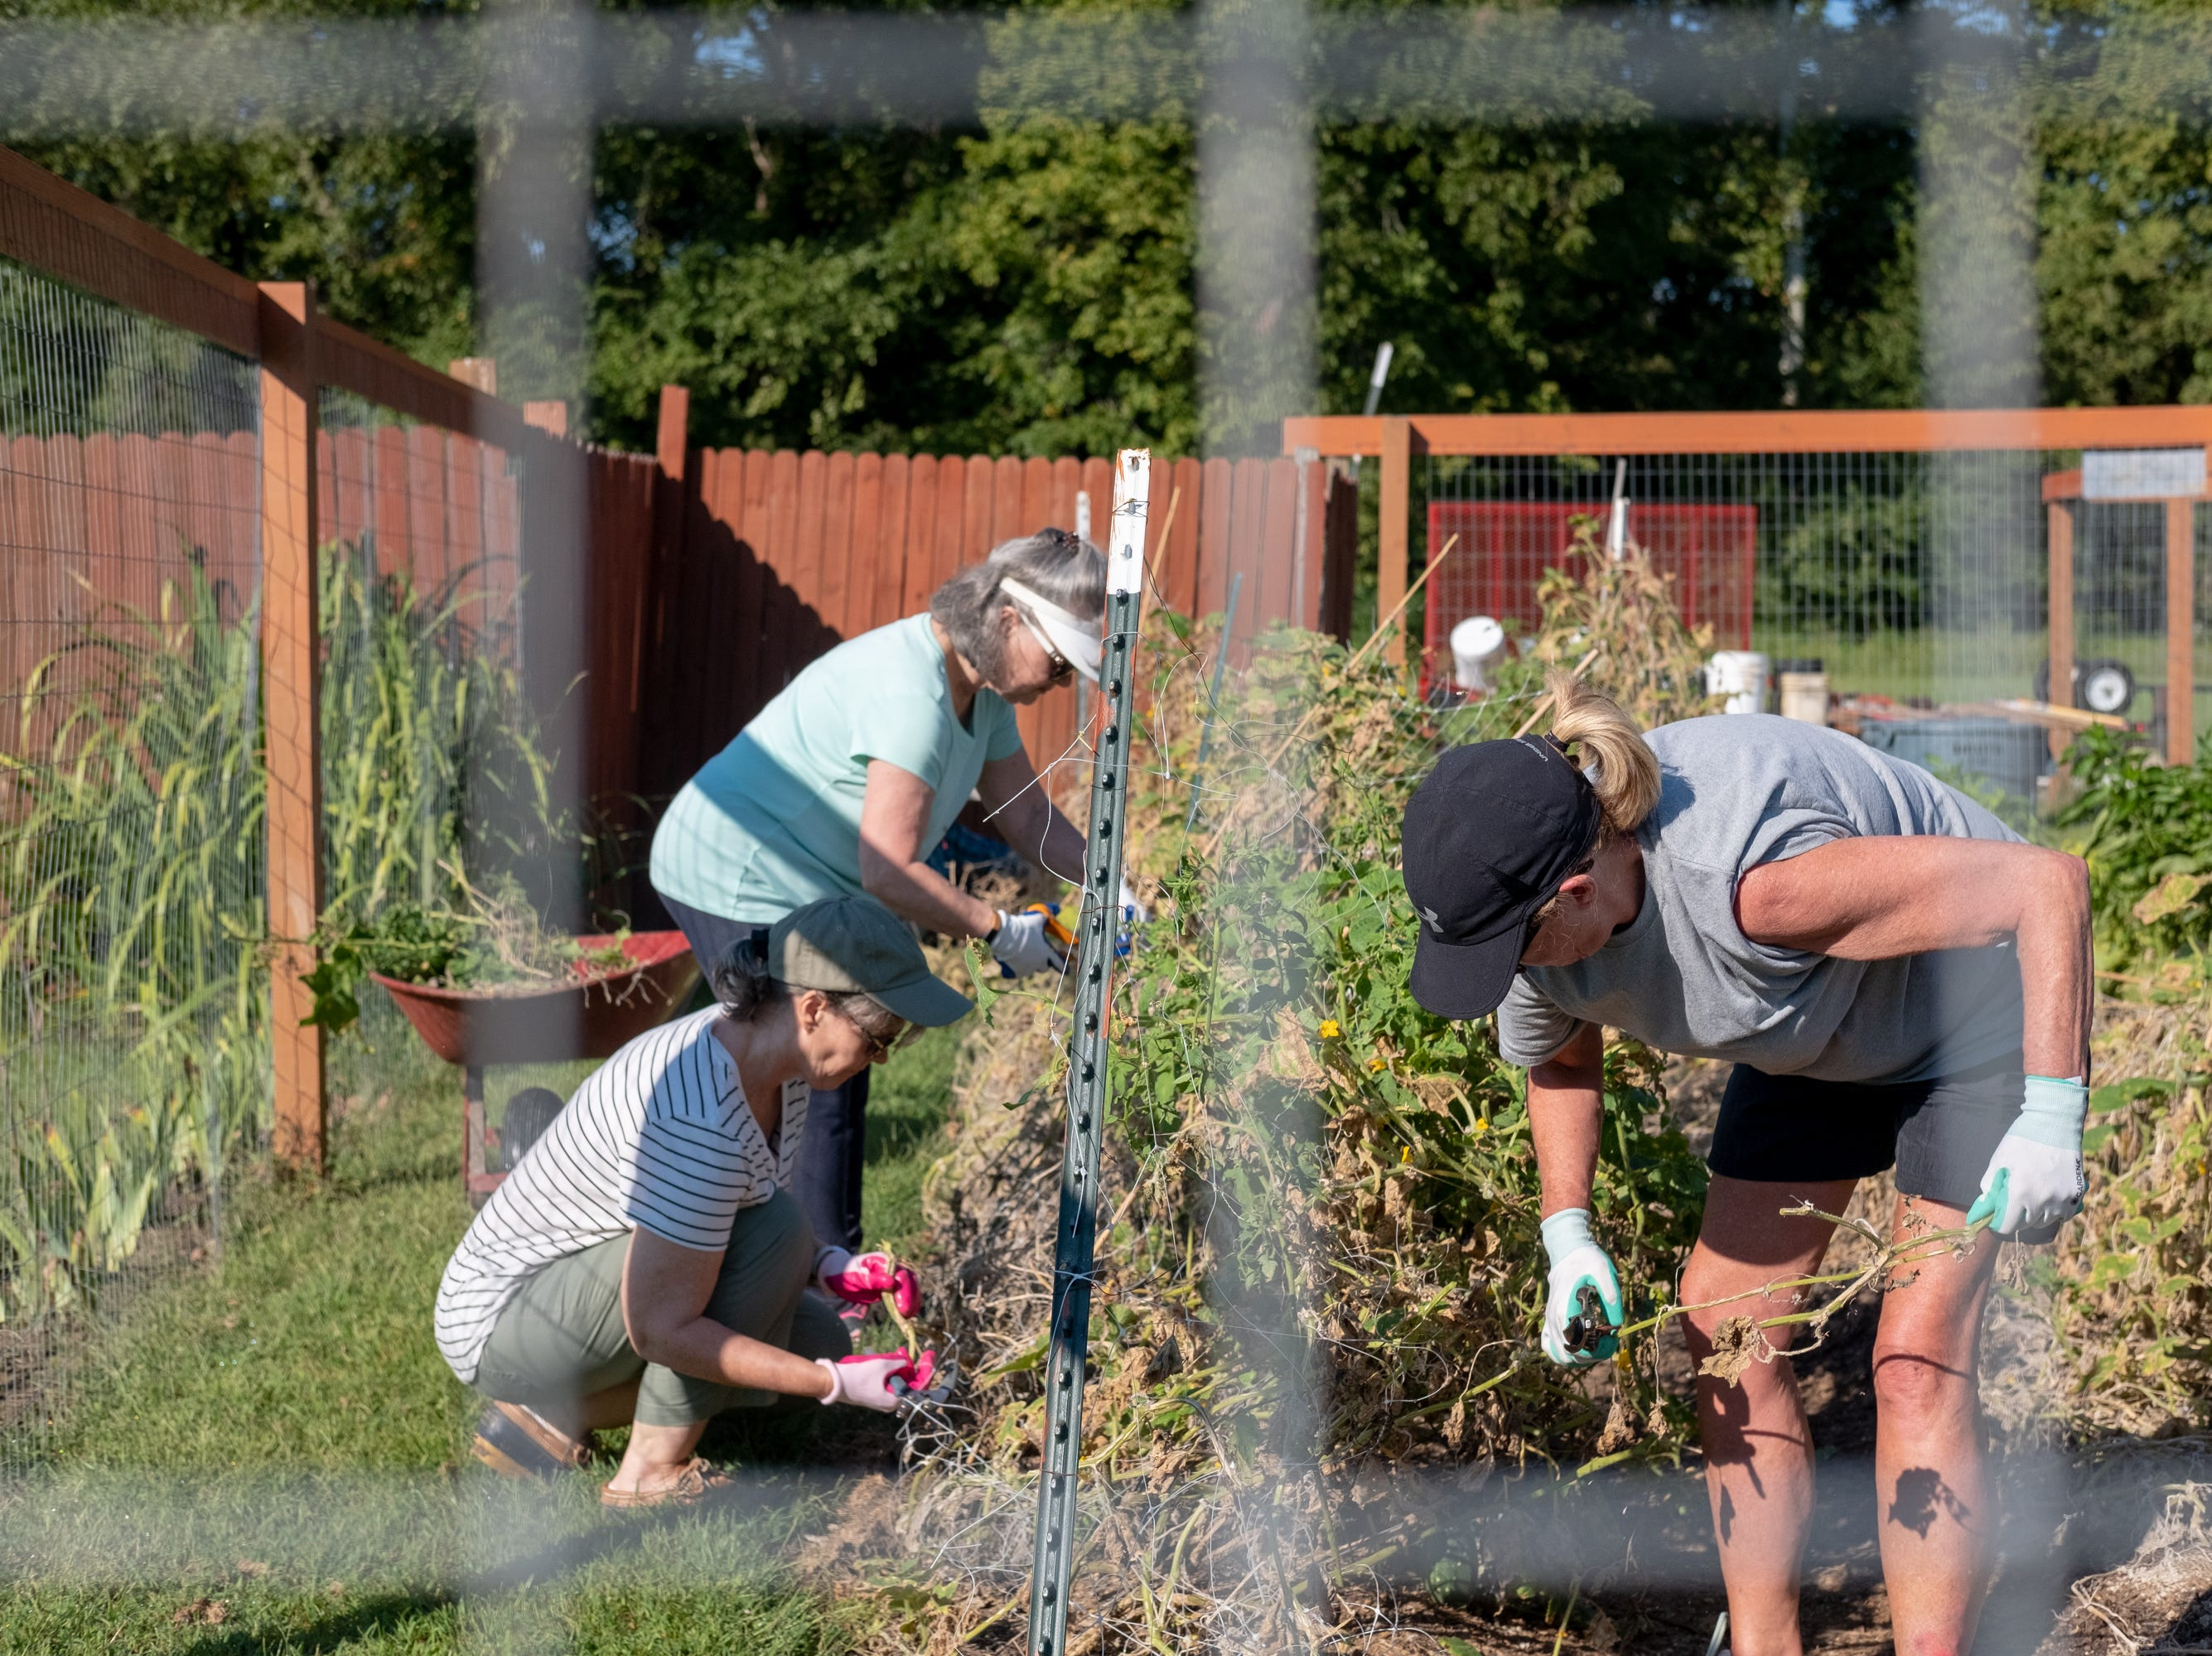 Volunteers work in the Epiphany Community Garden, clearing old plants on Saturday, Sept. 15, 2018.